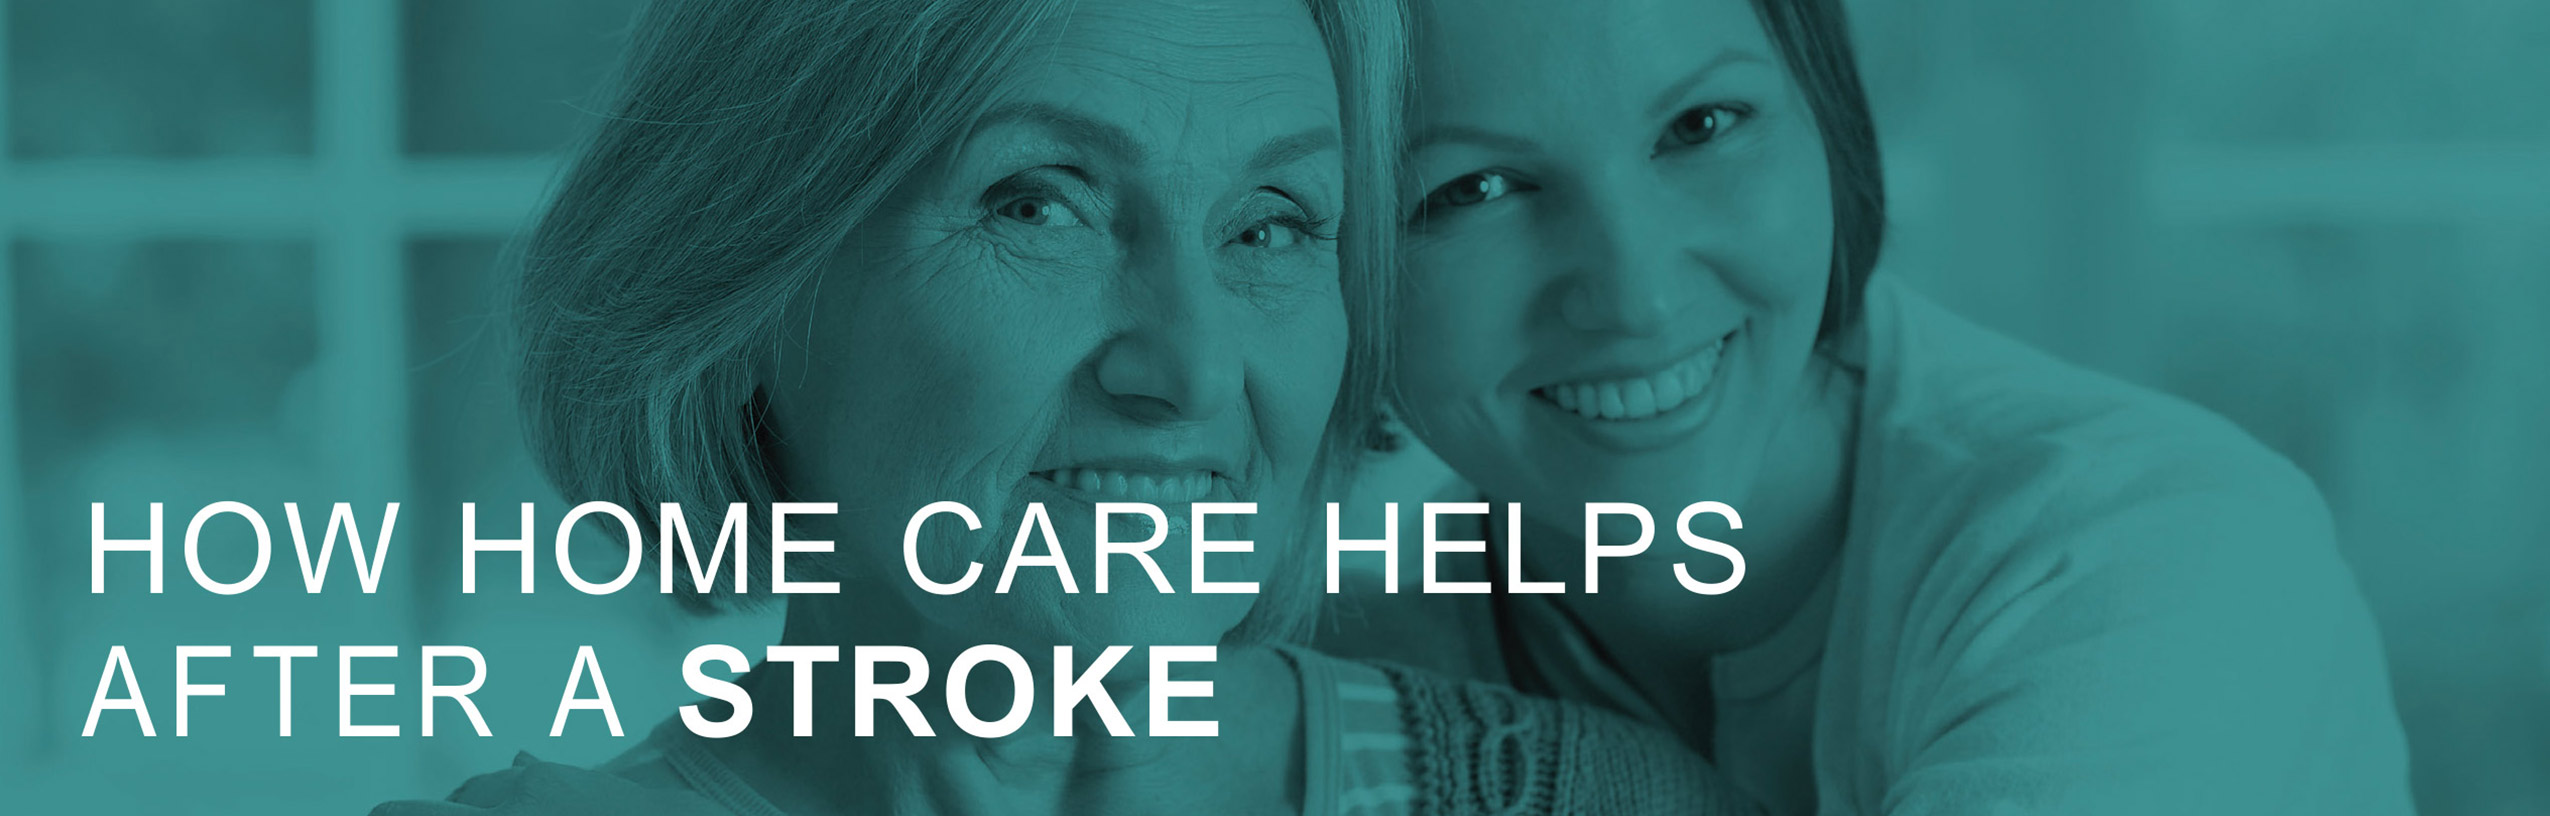 Home Care For Stroke Victims